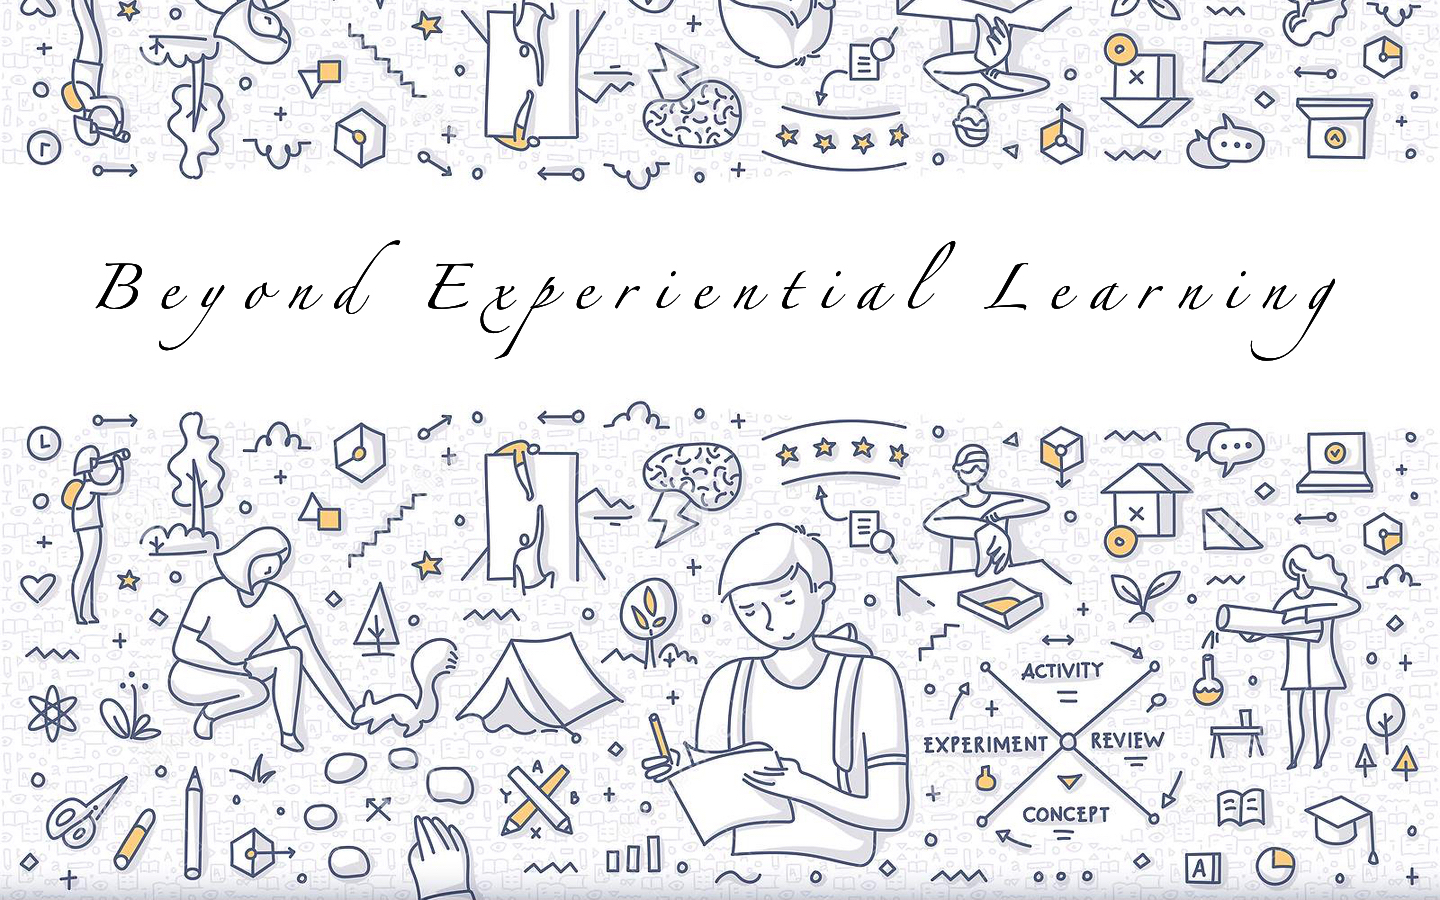 Beyond Experiential Learning